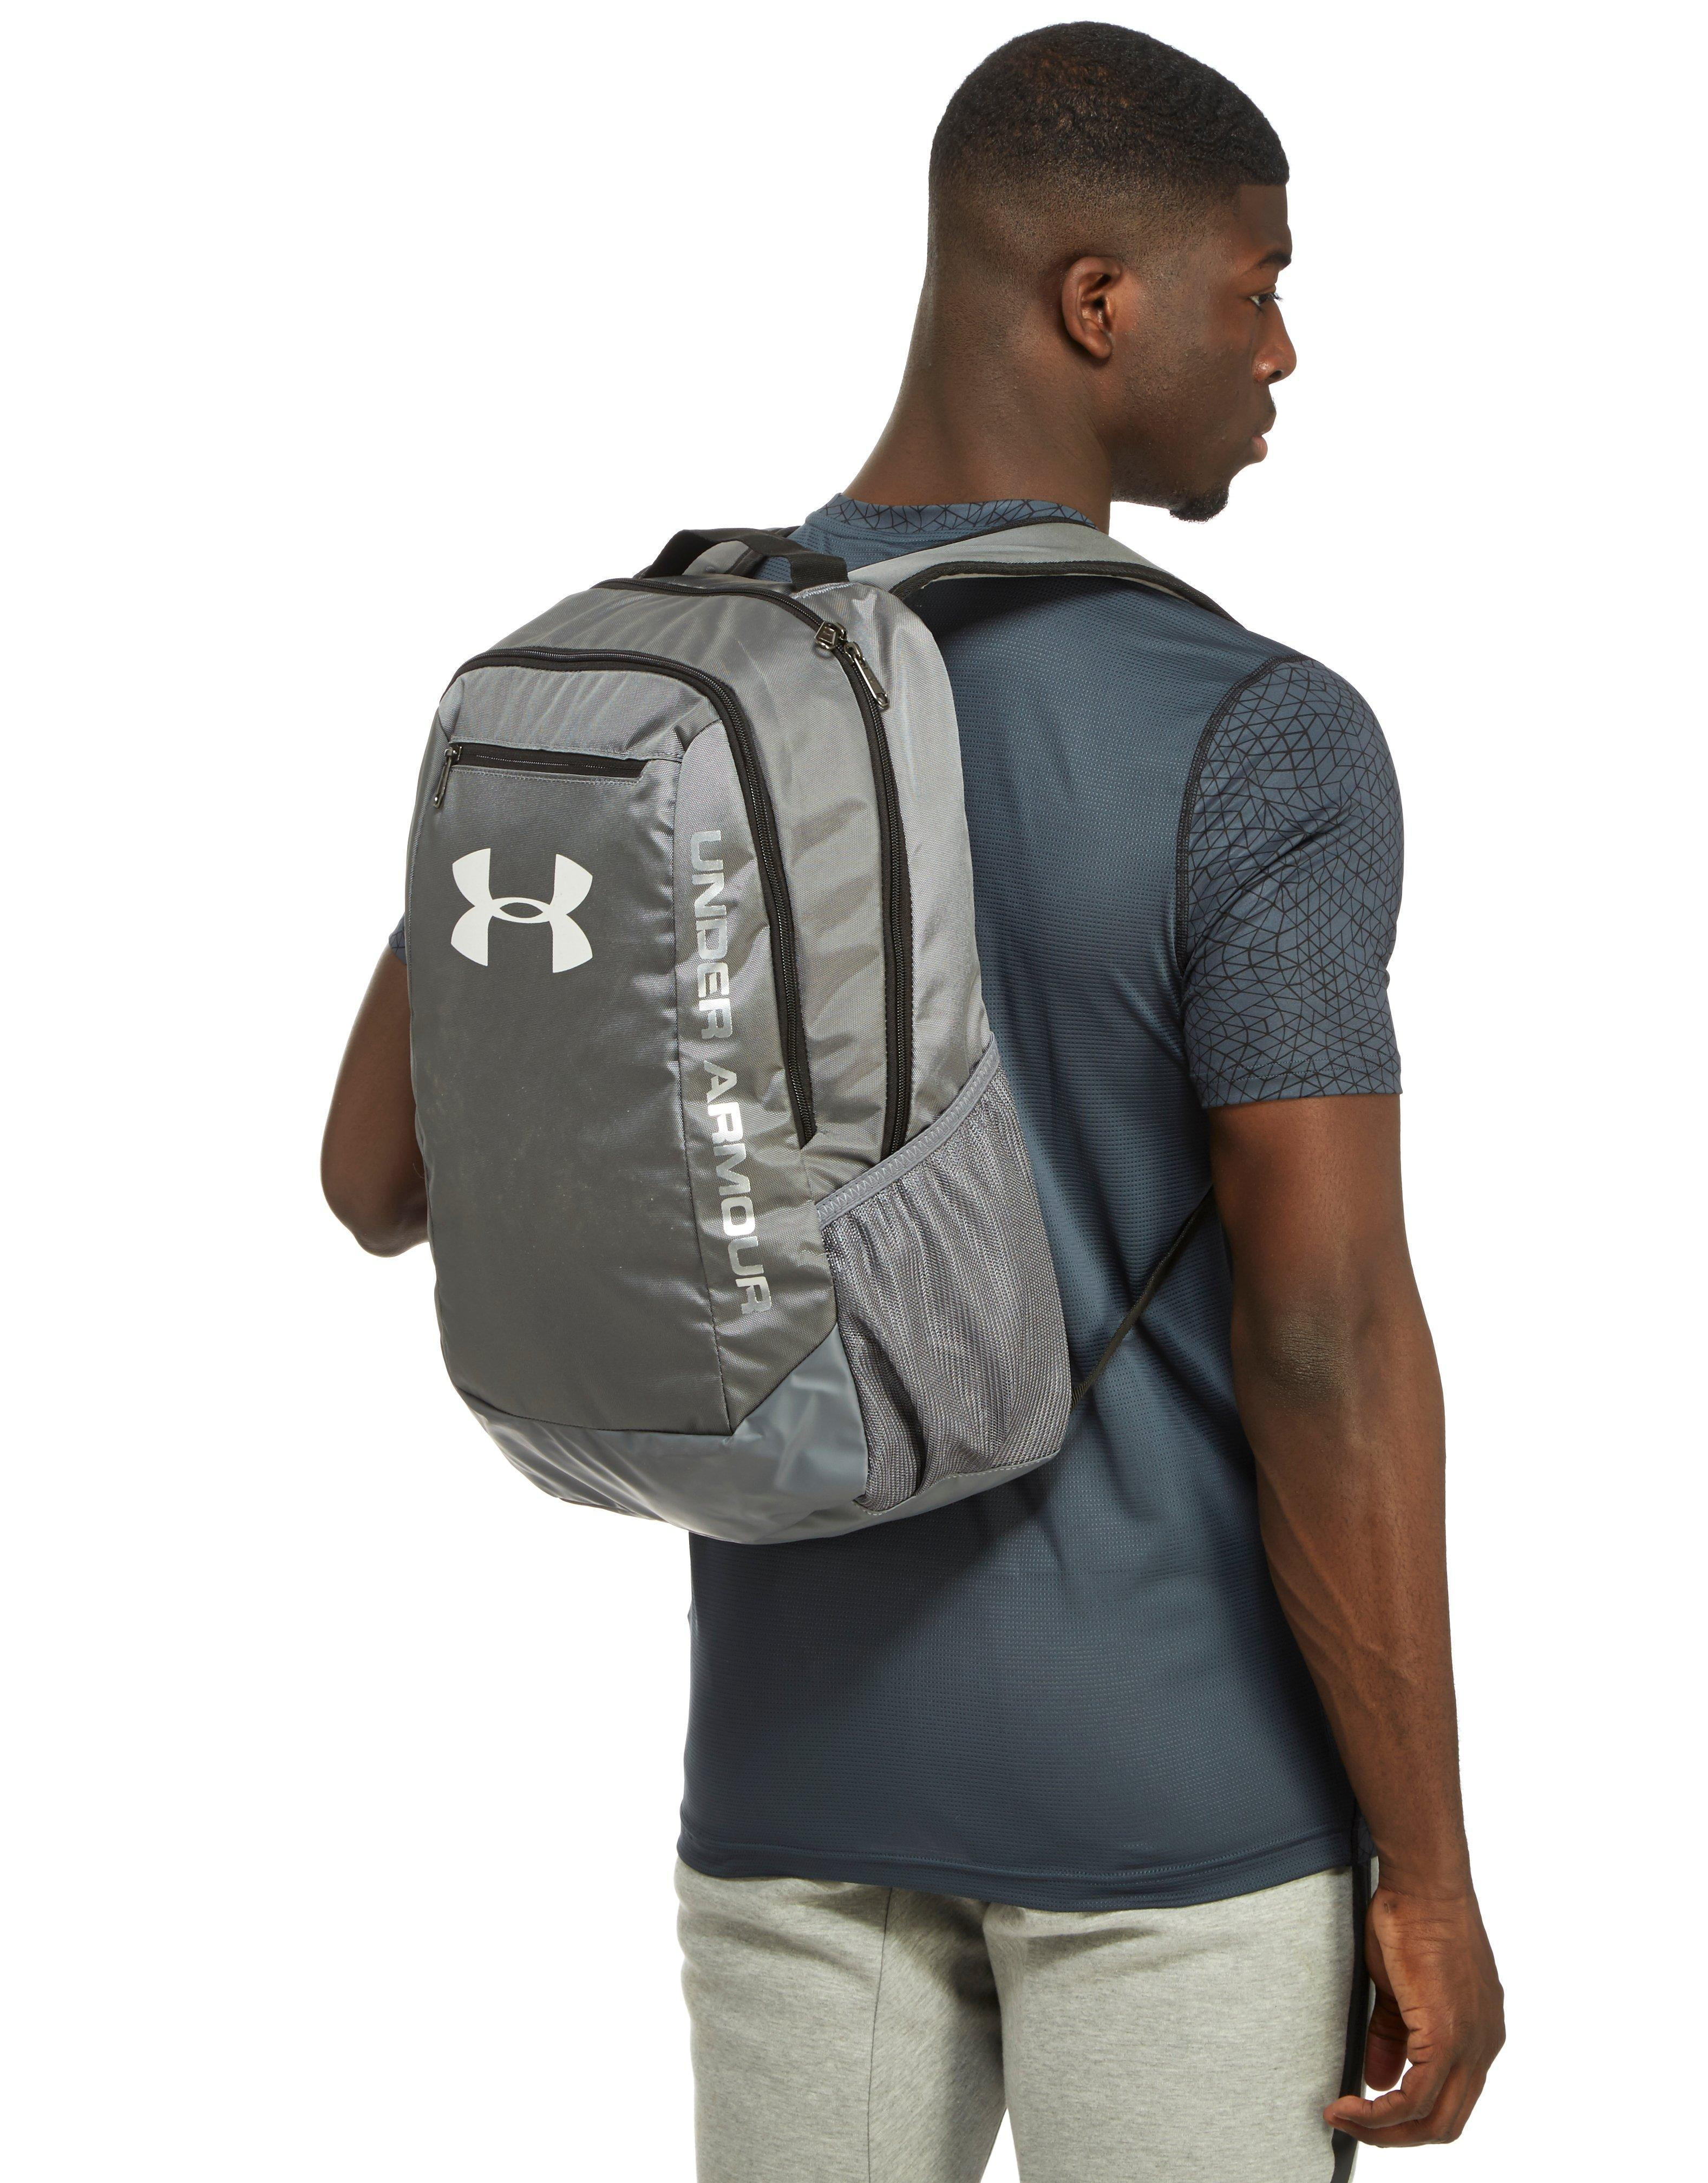 Under Armour Hustle Backpack in Gray for Men - Lyst 2a824f07c1044